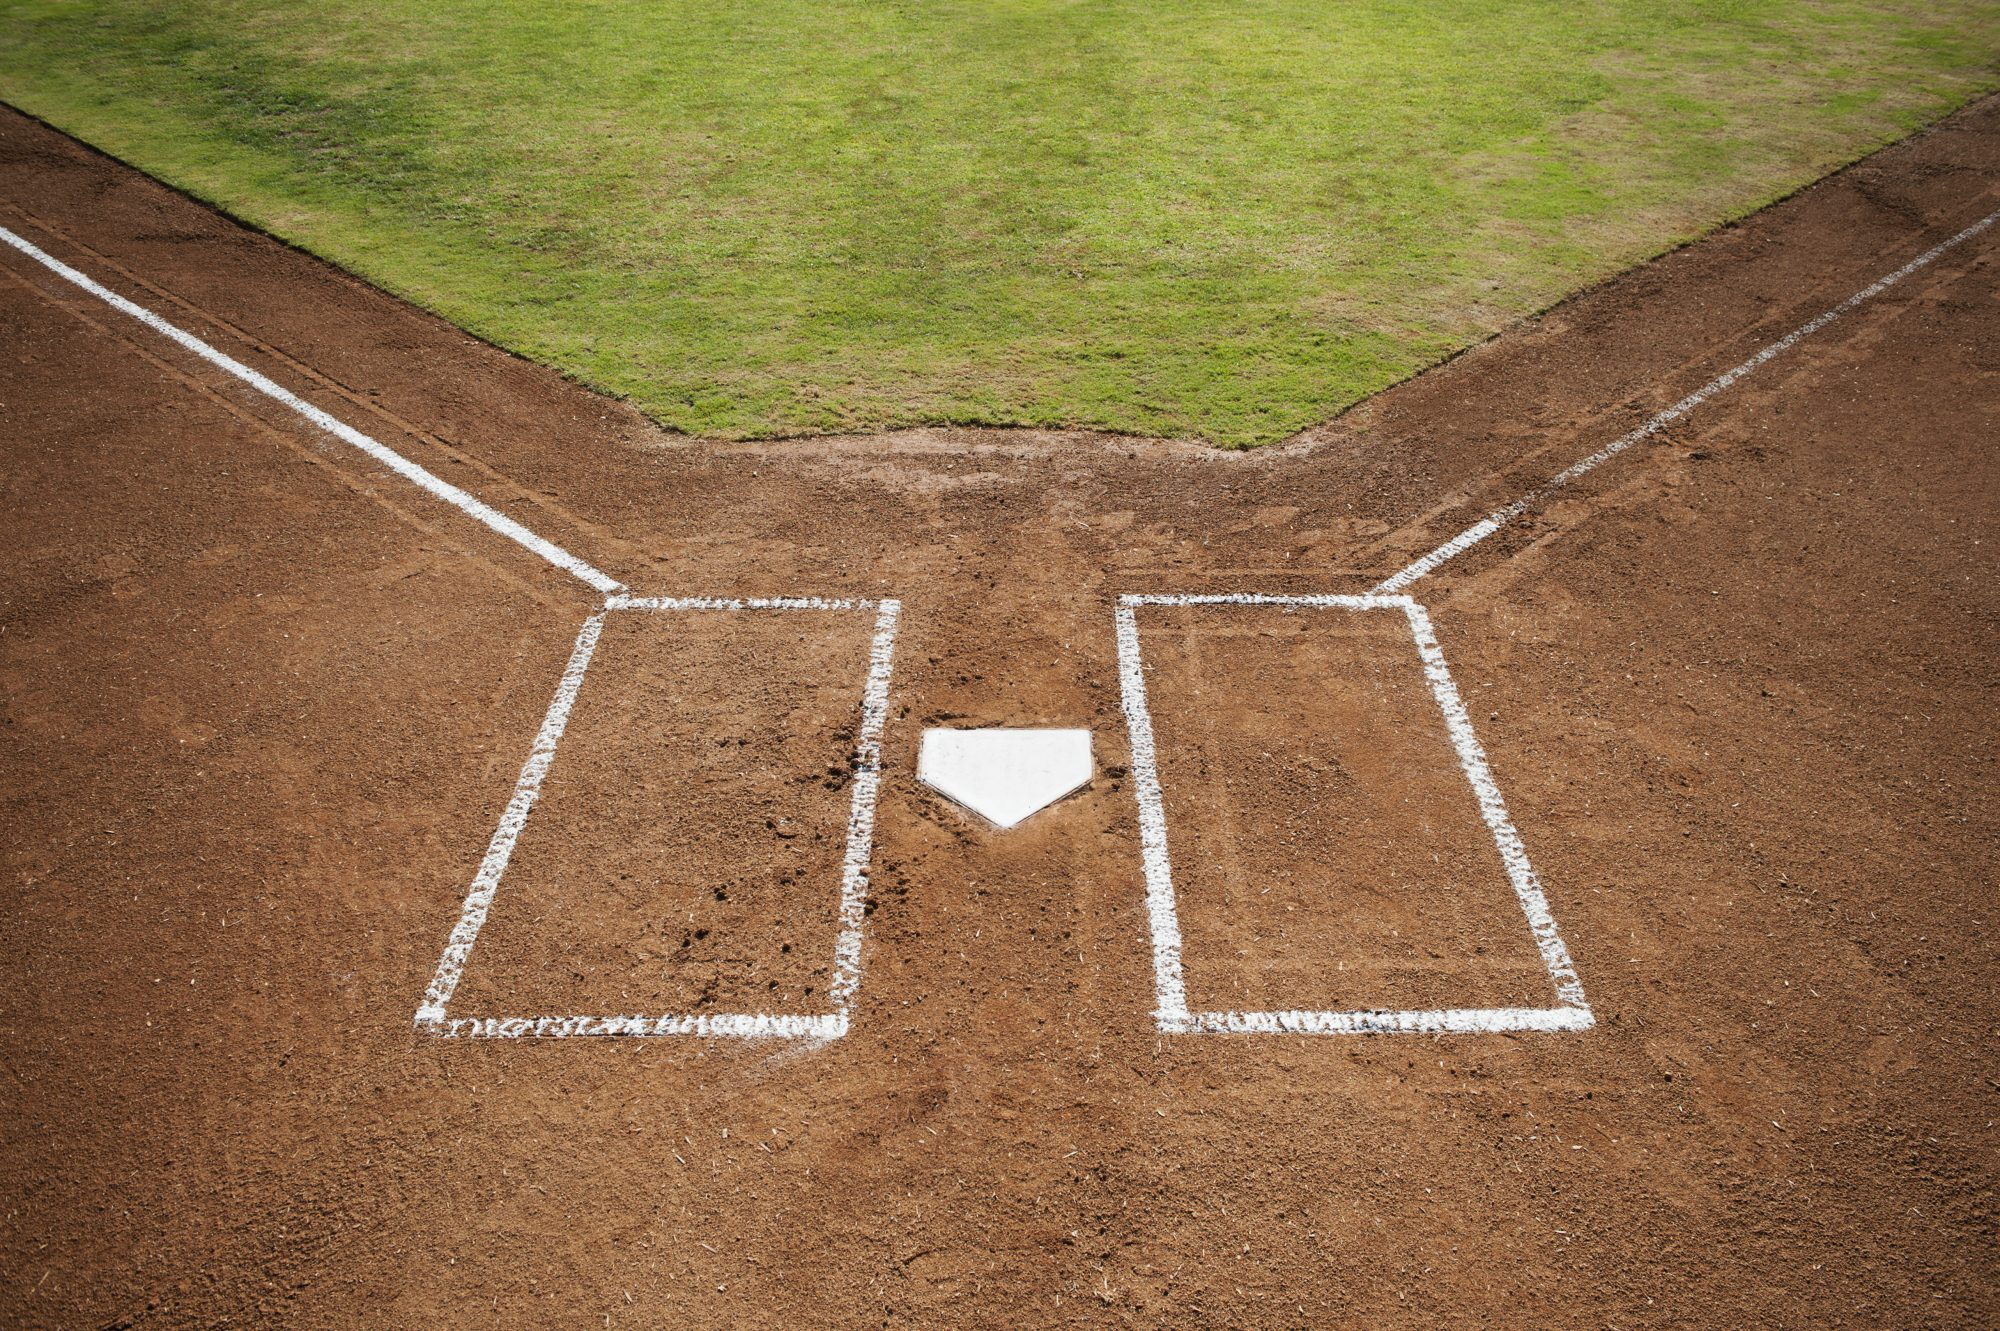 An Eighth-Grade Baseball Catcher Has One Arm and All The ...